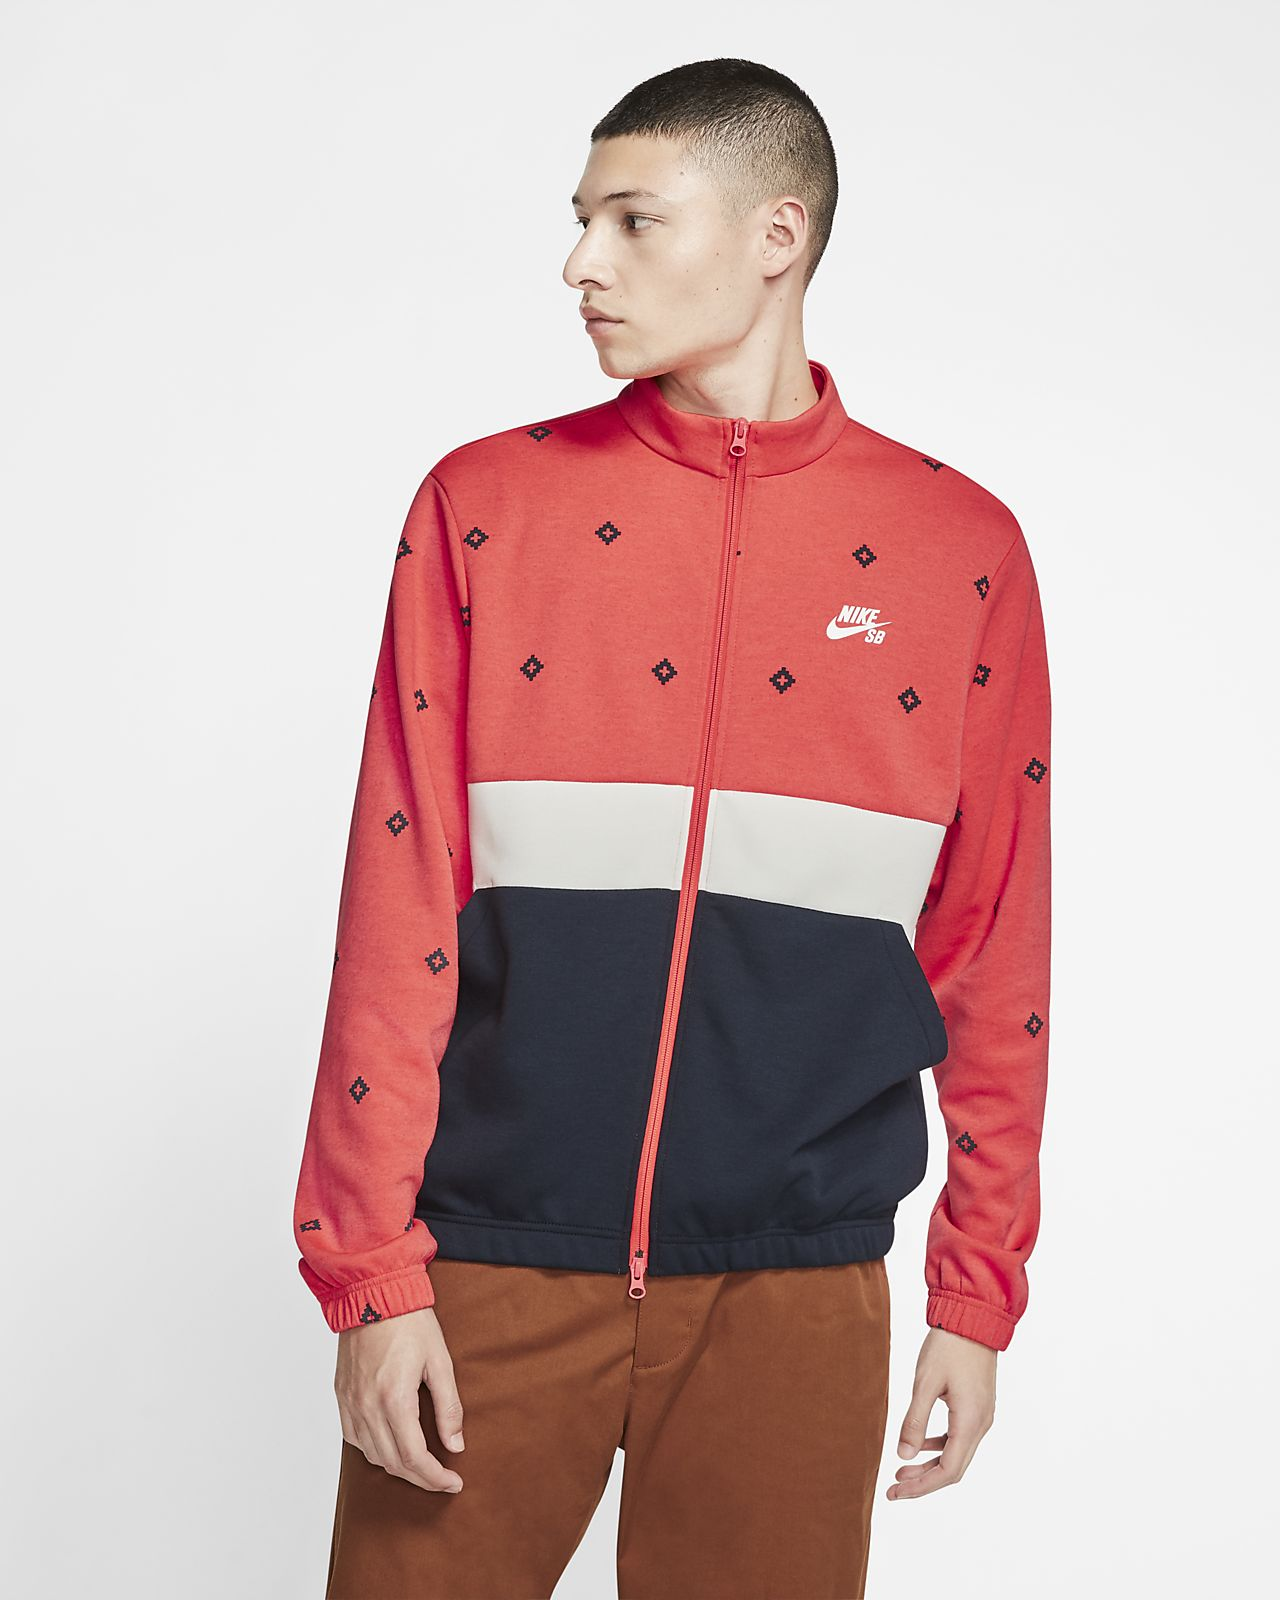 Nike SB Dri-FIT Men's Printed Skate Track Jacket